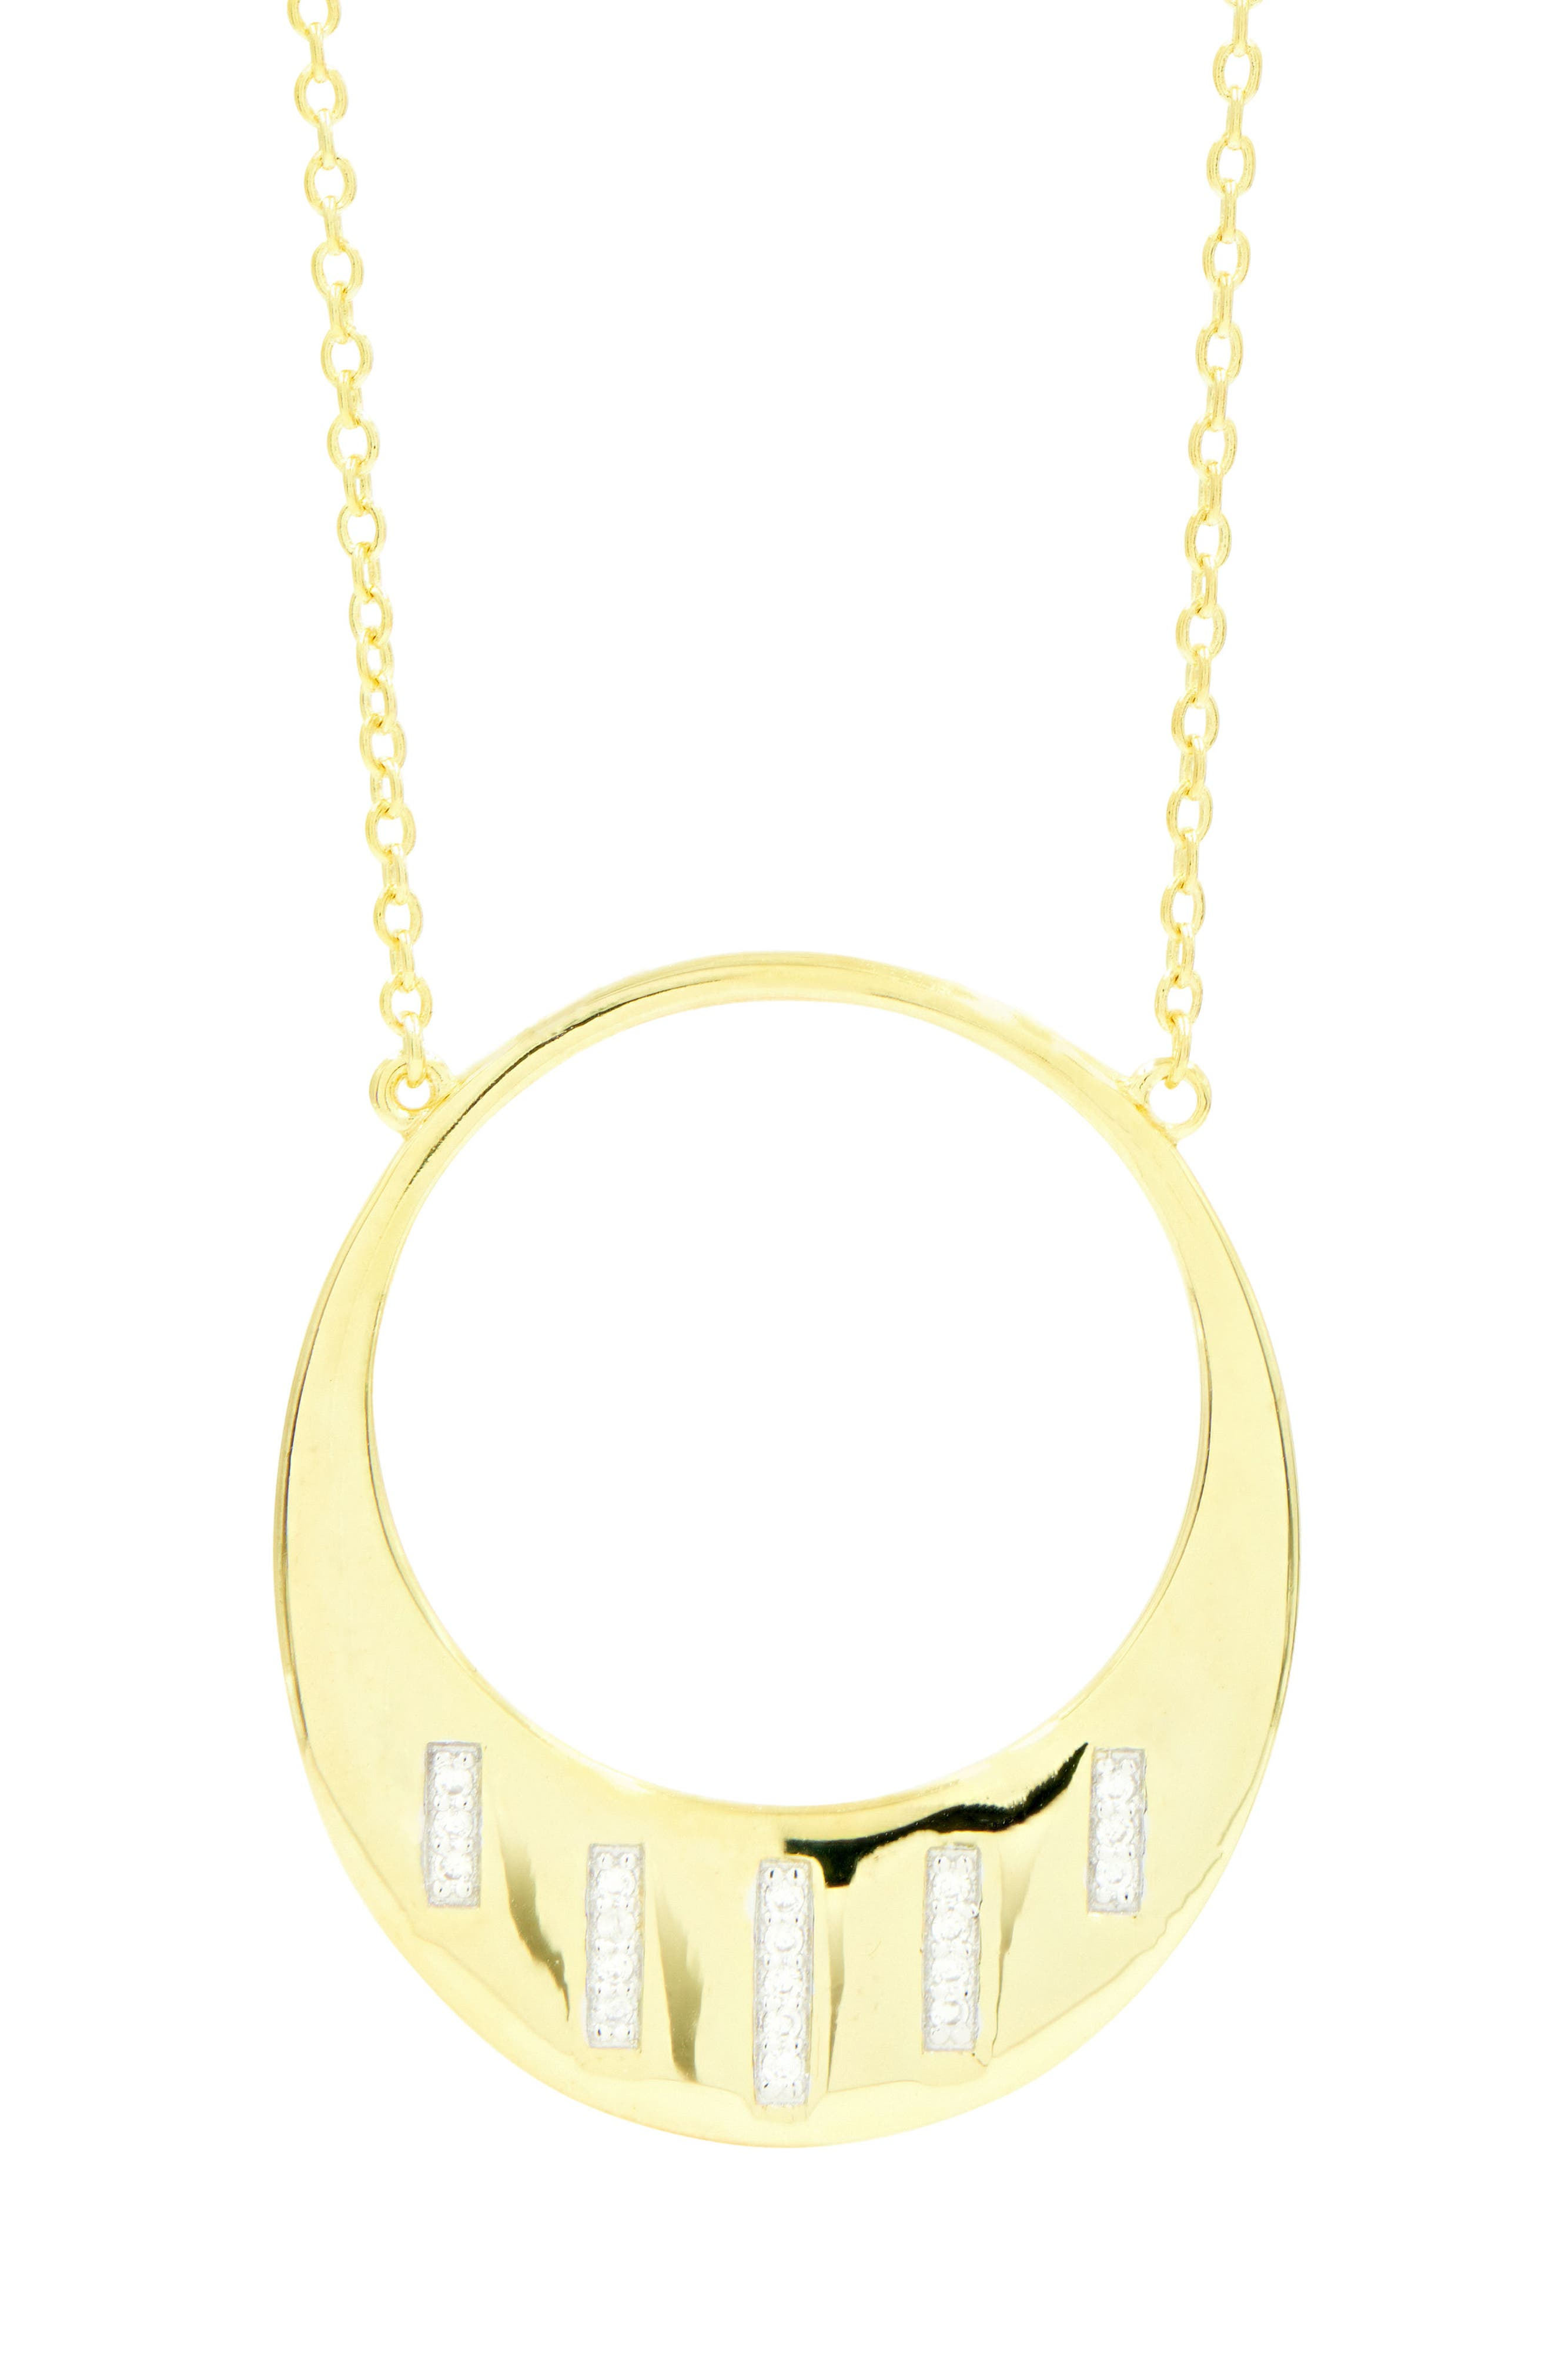 Radiance Open Pendant Necklace,                             Alternate thumbnail 3, color,                             Silver/ Gold